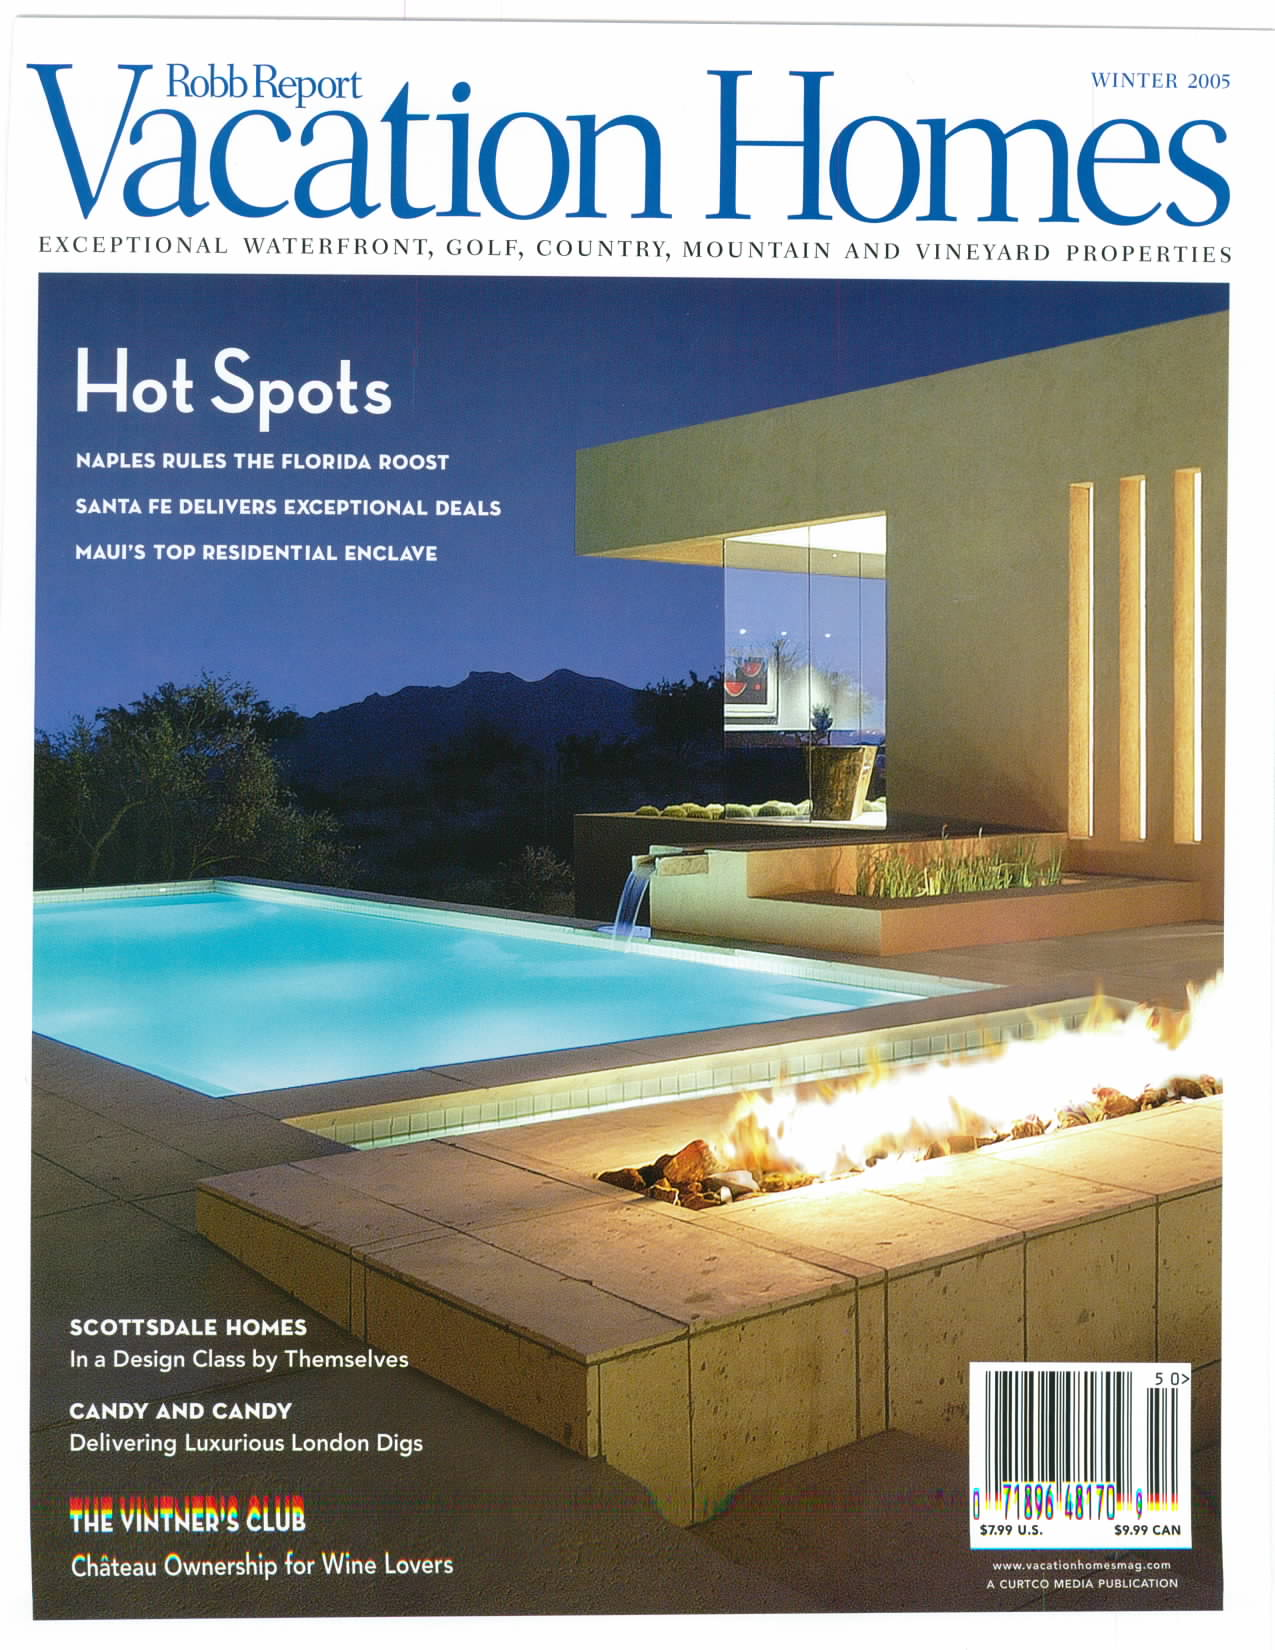 ROBB REPORT VACATION HOMES, WINTER 2005_Page_1